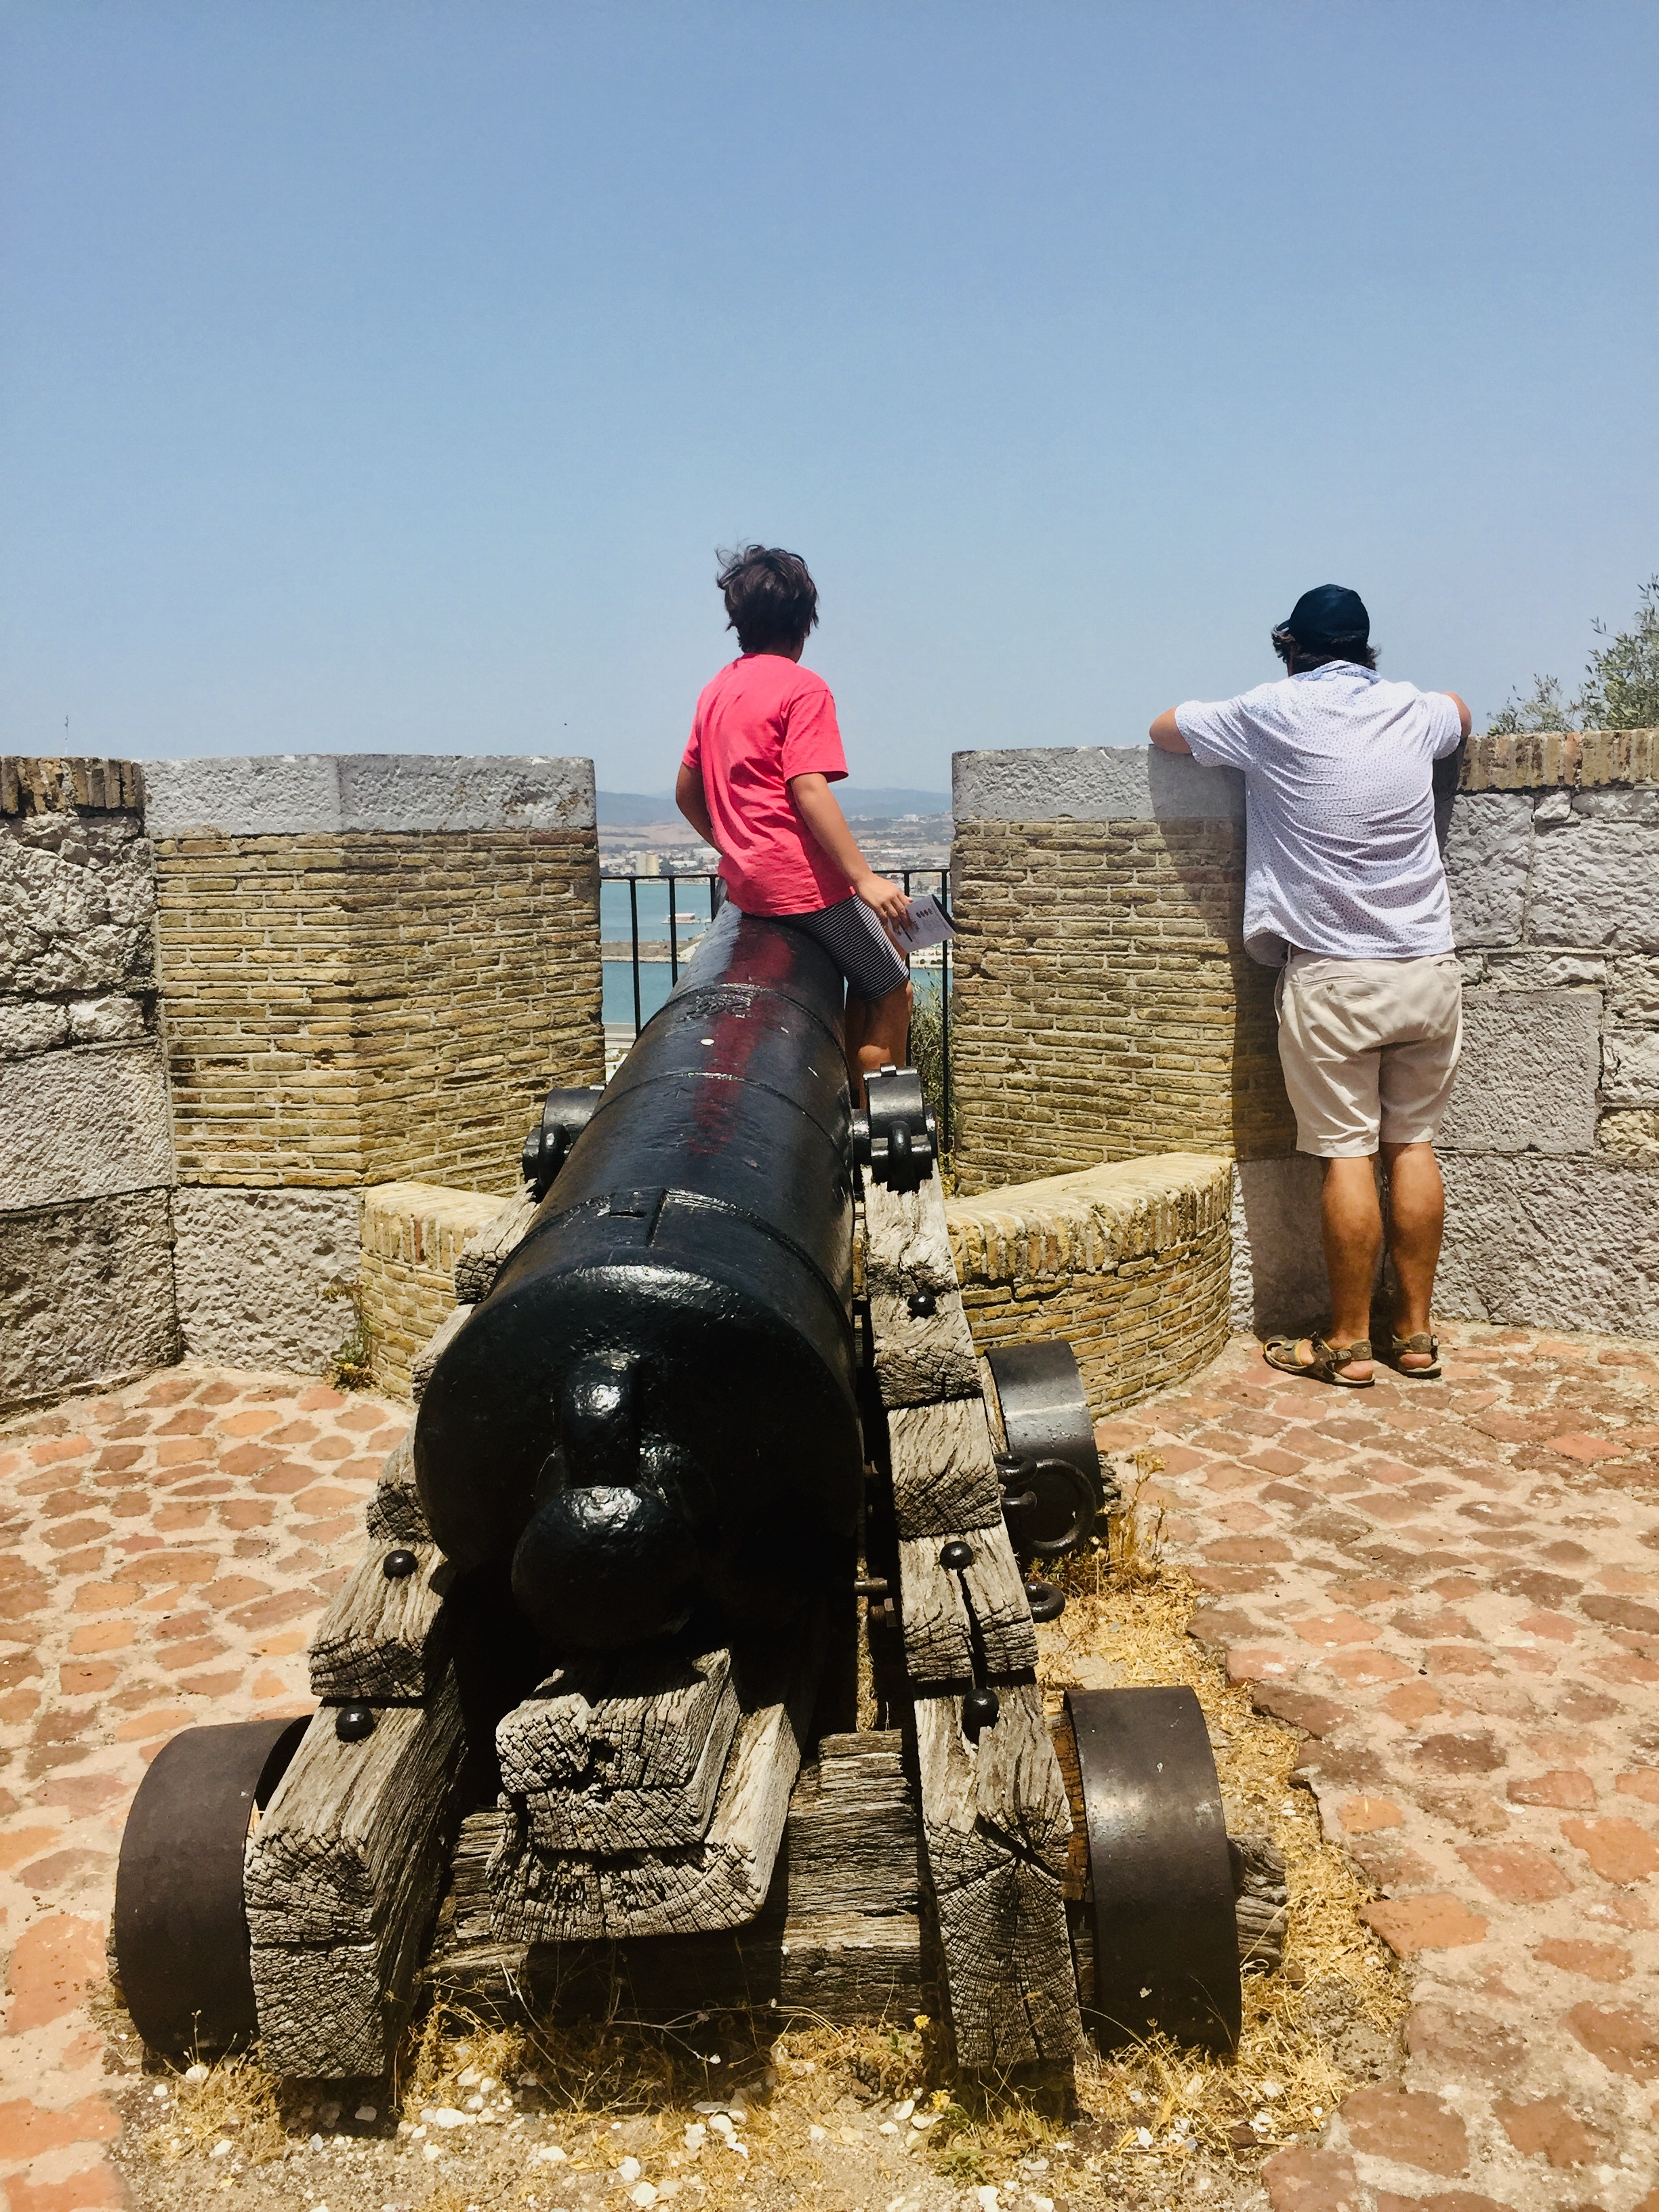 The Moorish Castle Guns